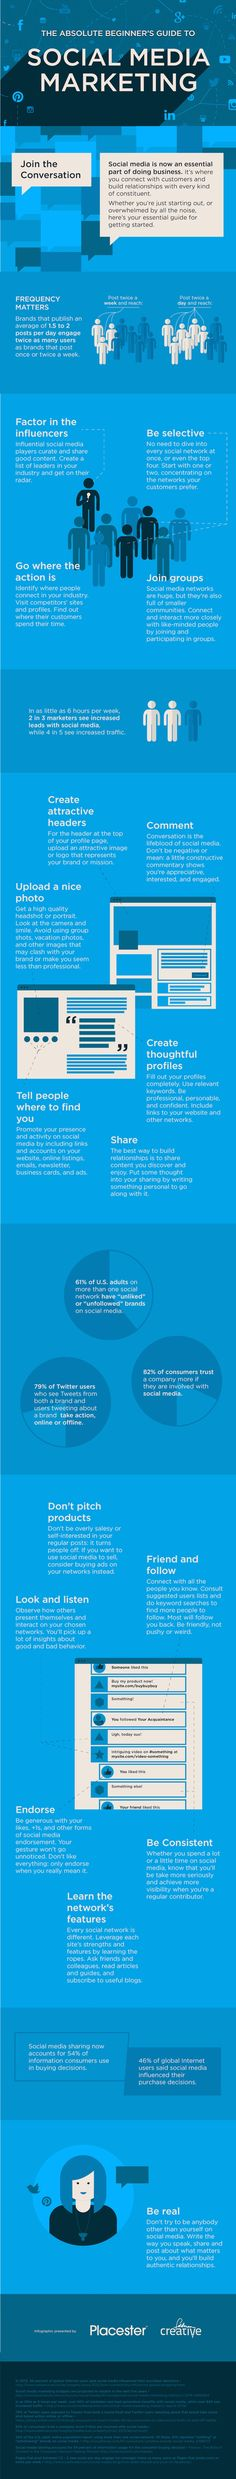 The Absolute Beginner's Guide to Social Media Marketing [INFOGRAPHIC]. Courtesy of the Abbi Agency